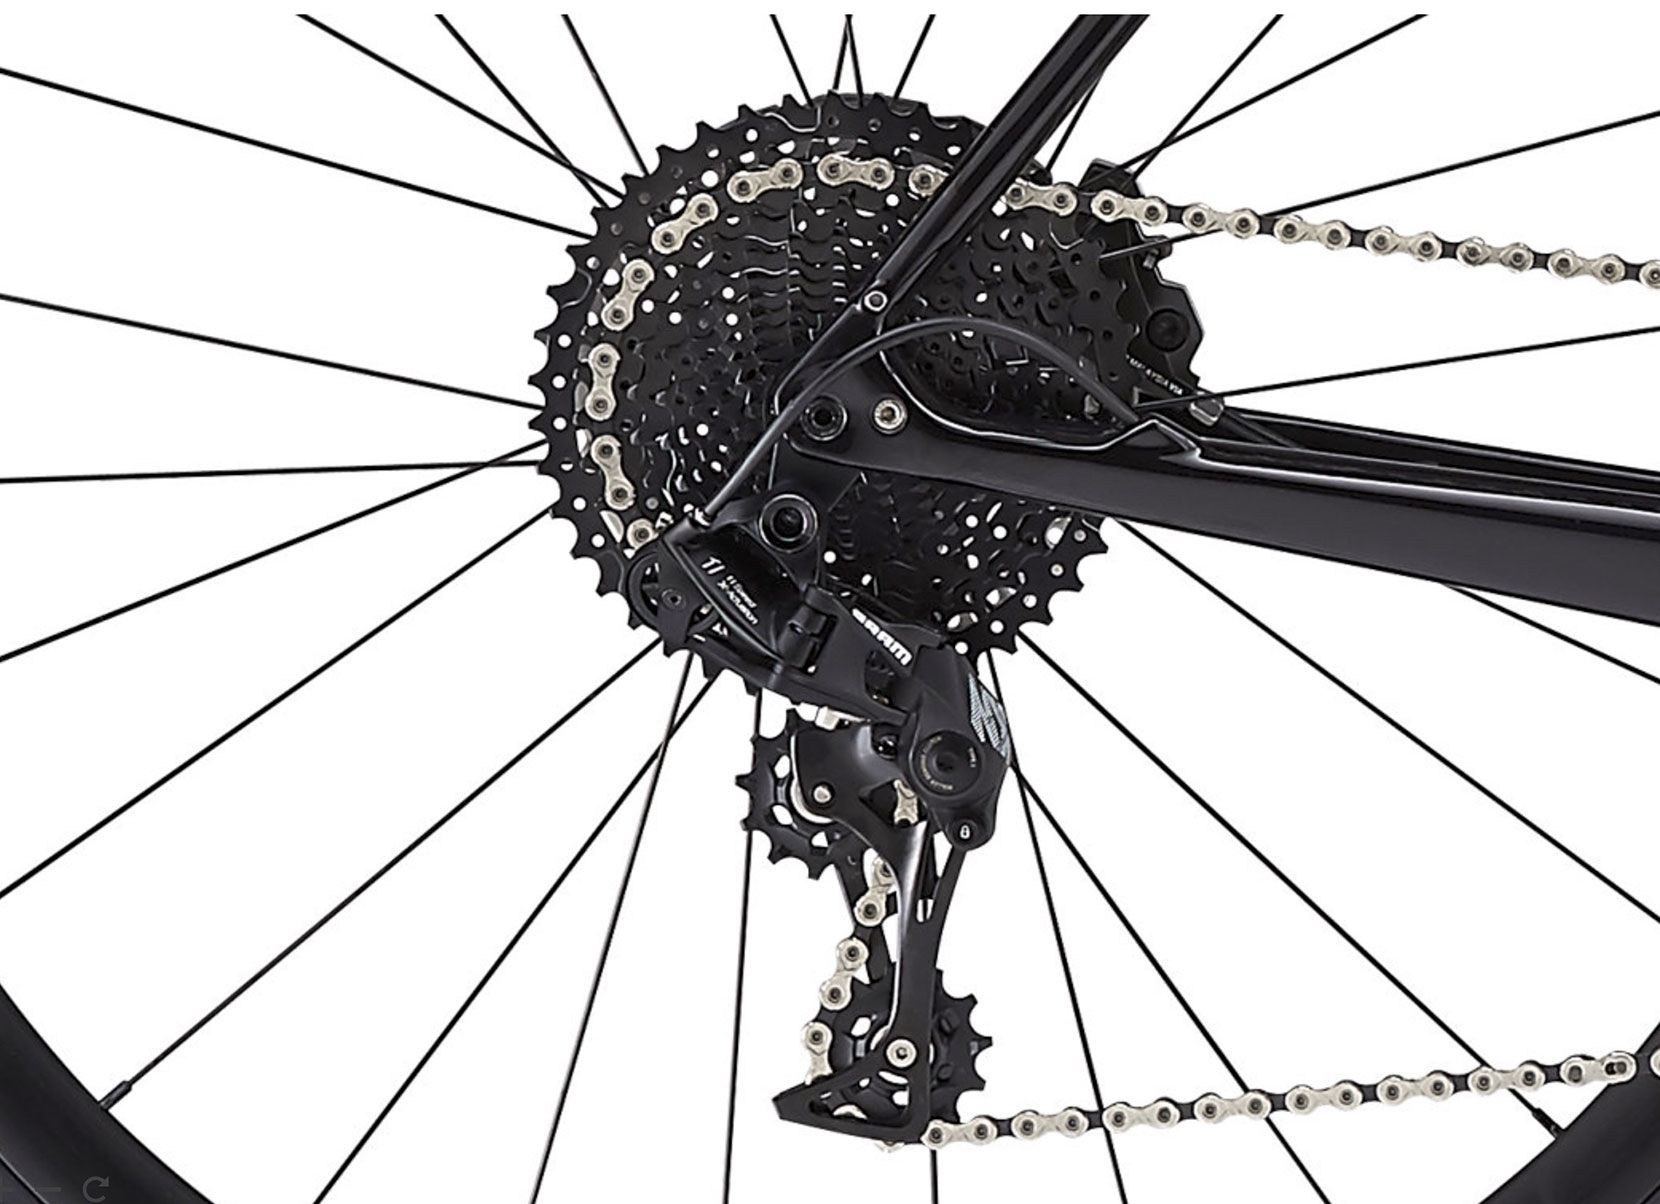 The SRAM rear derailleur and huge Sunrace cassette - the gear range is suited perfectly to urban and gravel rides